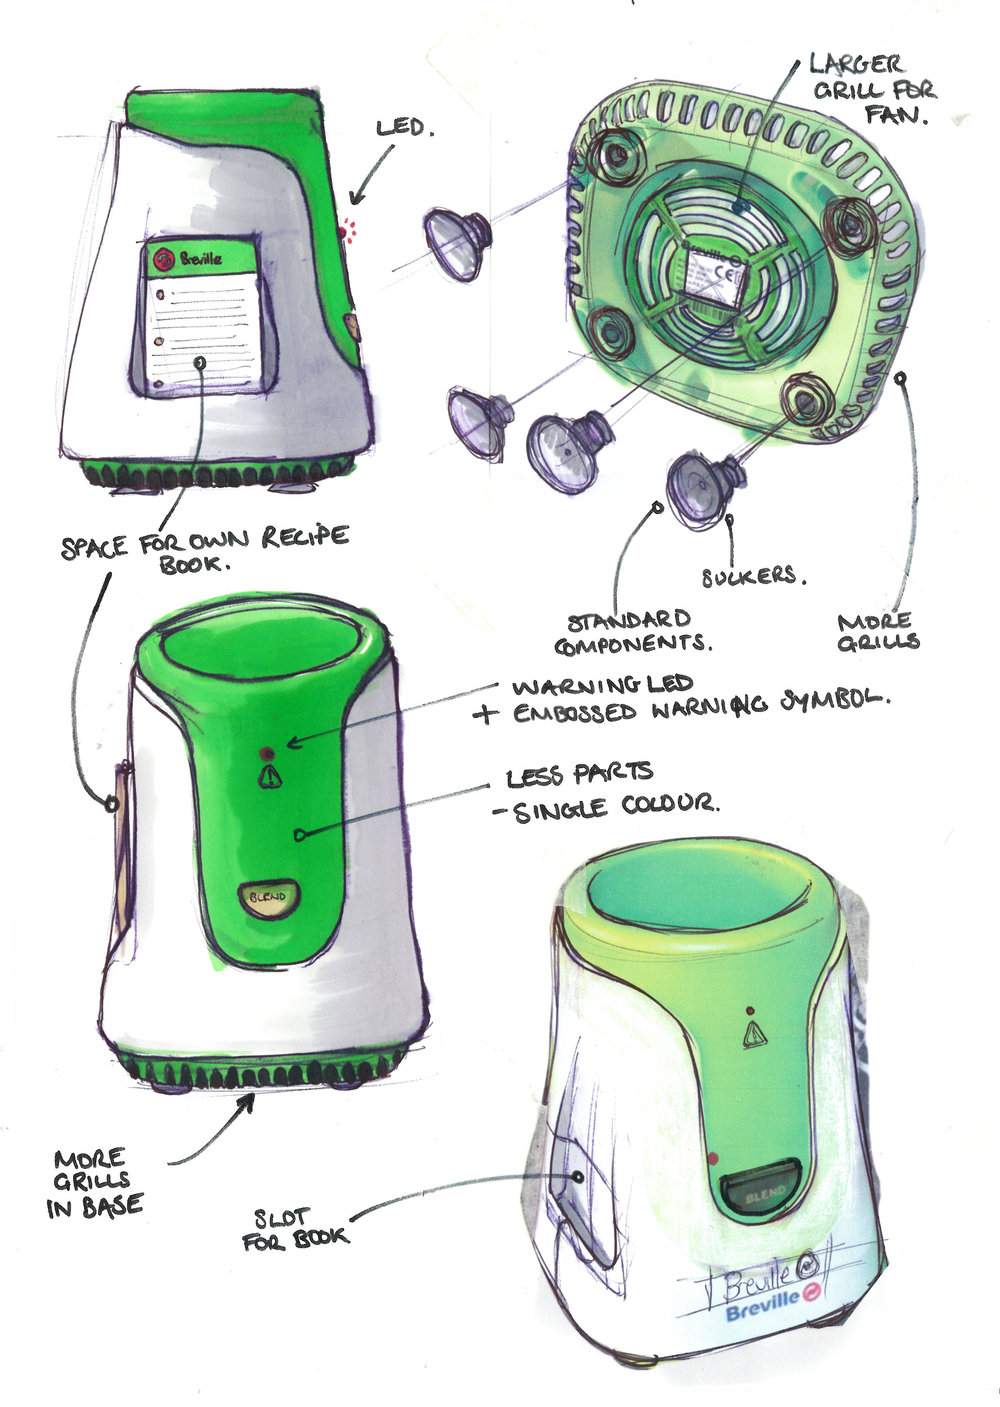 Identifying elements of a redesigned food   processor.